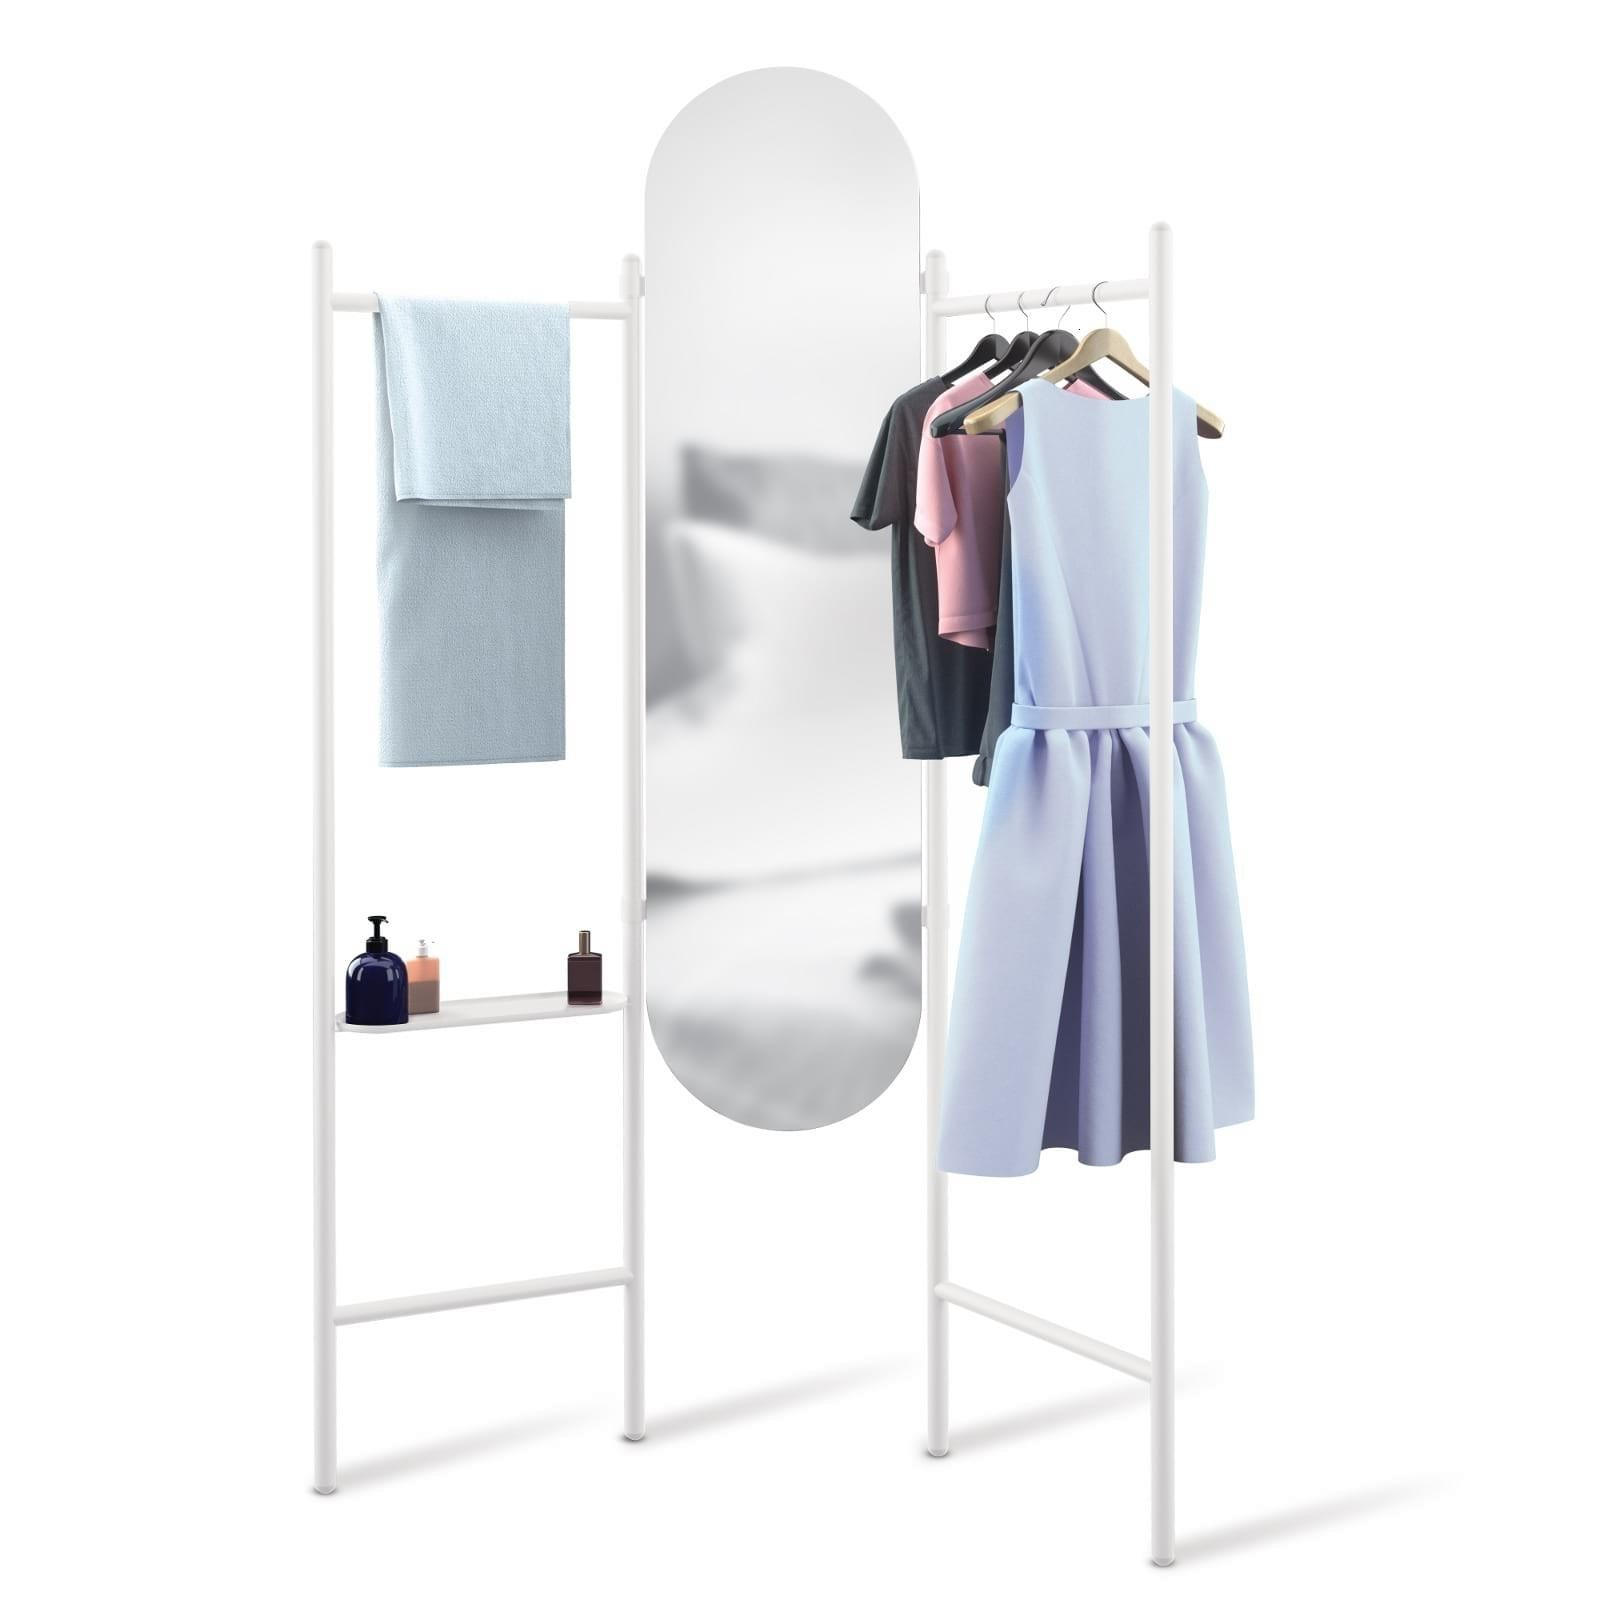 Vala Floor Mirror & Valet (White) - Umbra